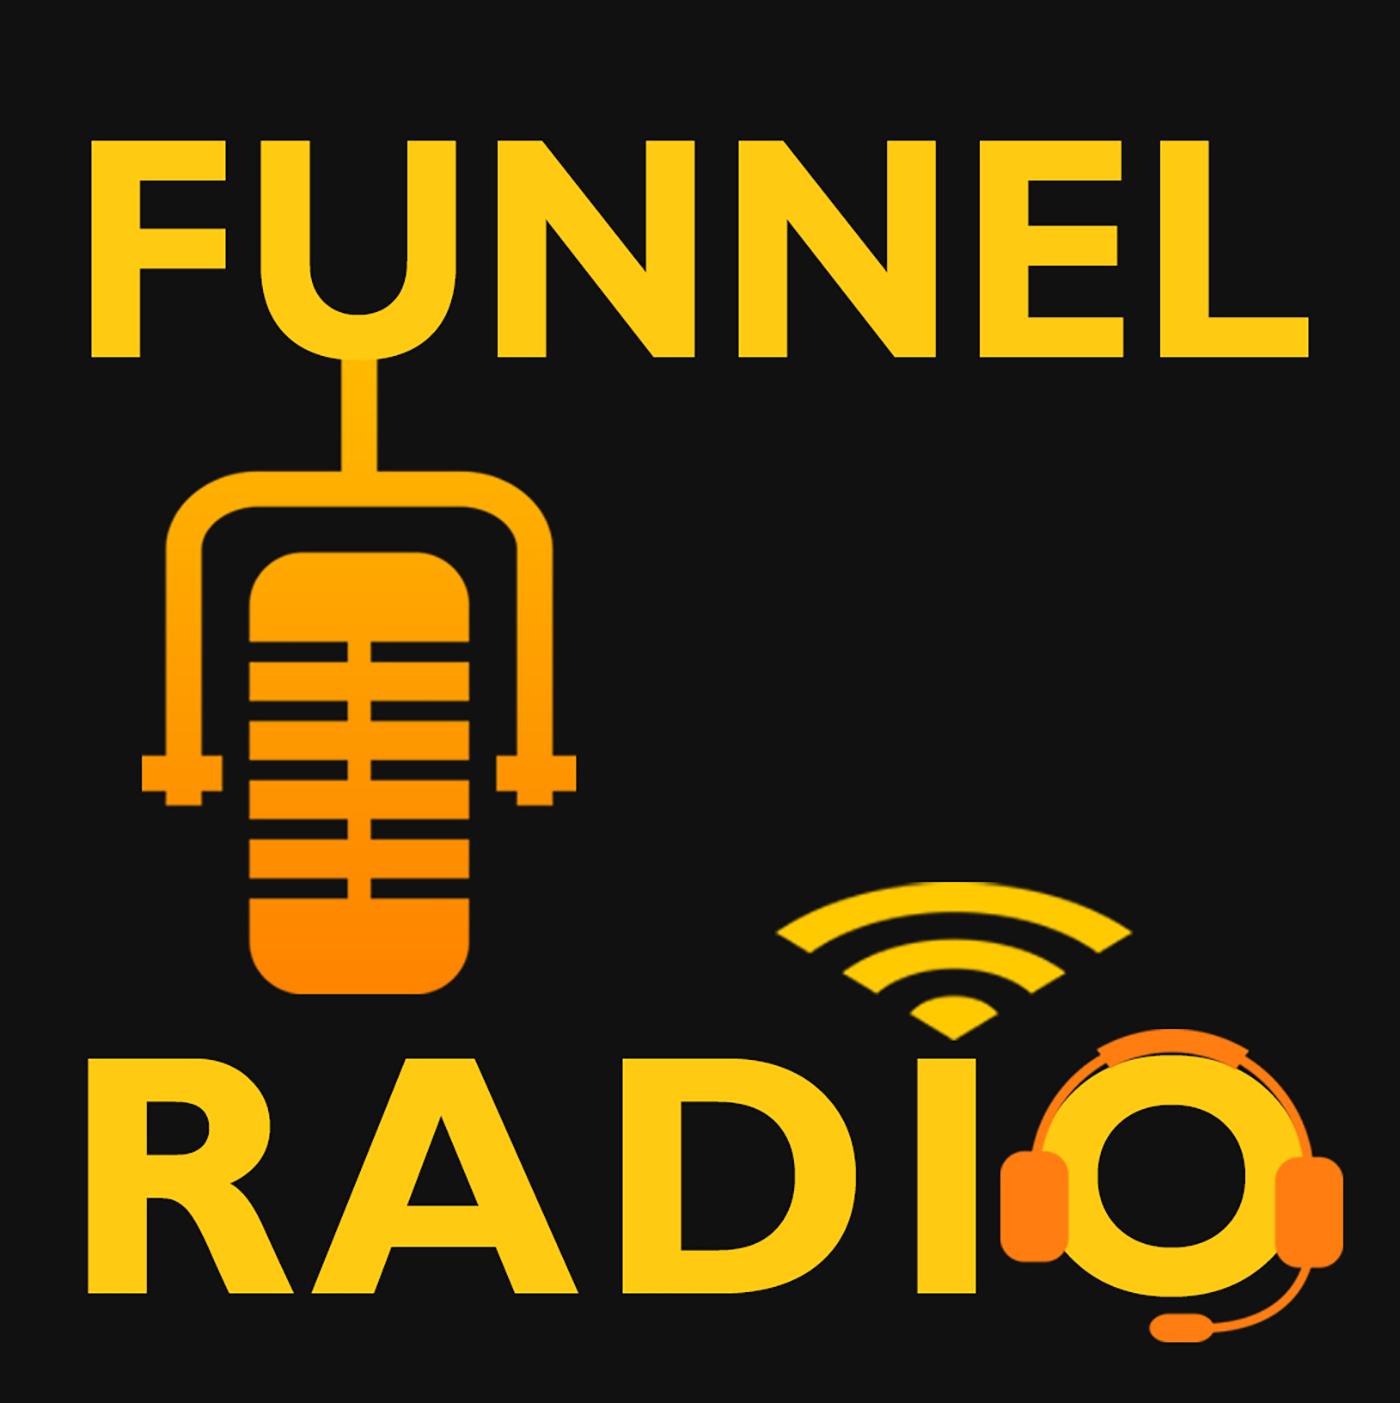 Funnel Radio Channel: Nov 29th: Singer, Sixsmith, Marks, Muessig, O'Connel and Stulz